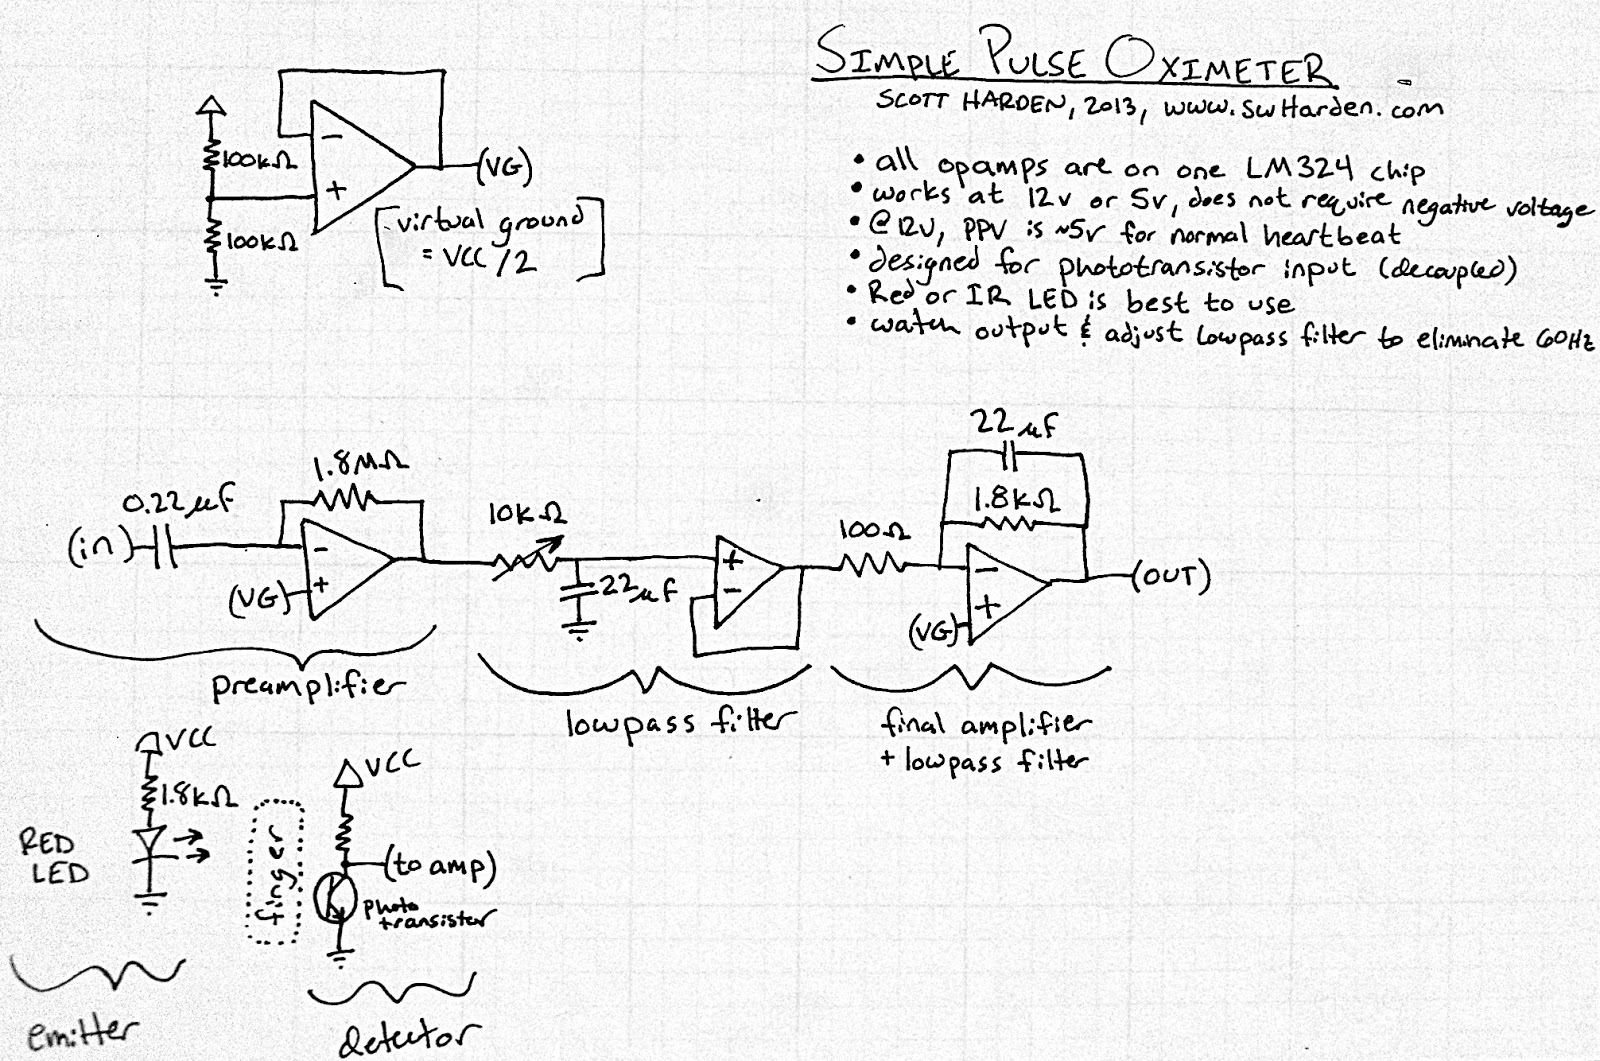 hight resolution of simple pulse oximeter circuit diagram electronic circuits diagram simple pulse oximeter circuit diagram